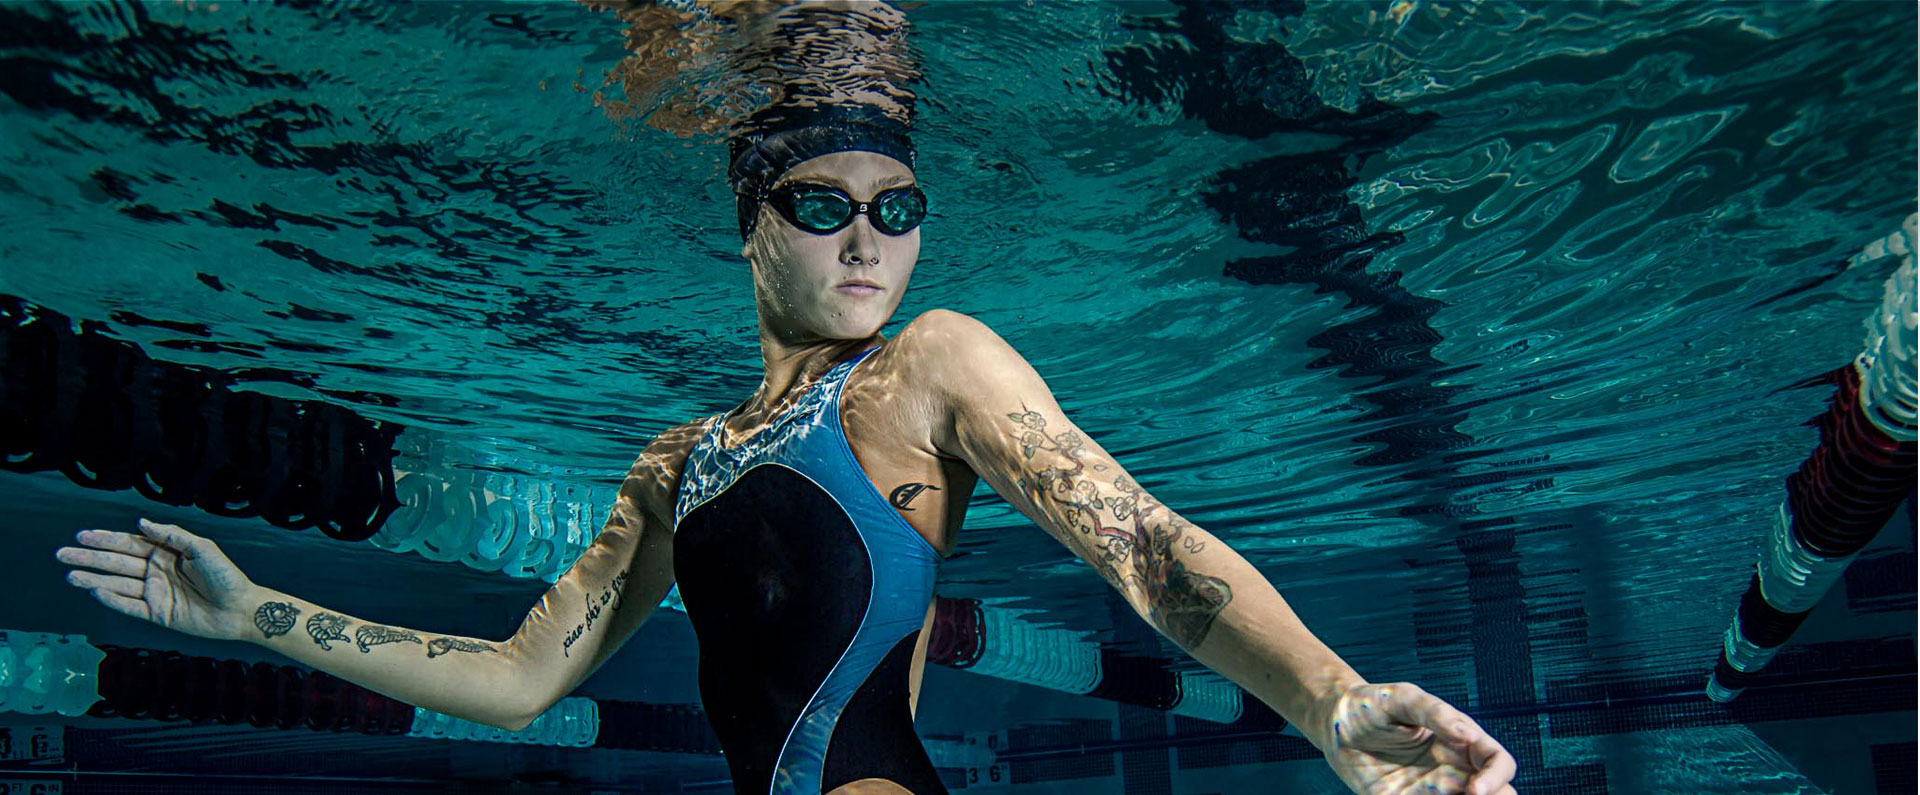 http://barracudausa.com/wp-content/themes/barracuda-usa/assets/img/images/home_page_swimmer_1@1920.jpg